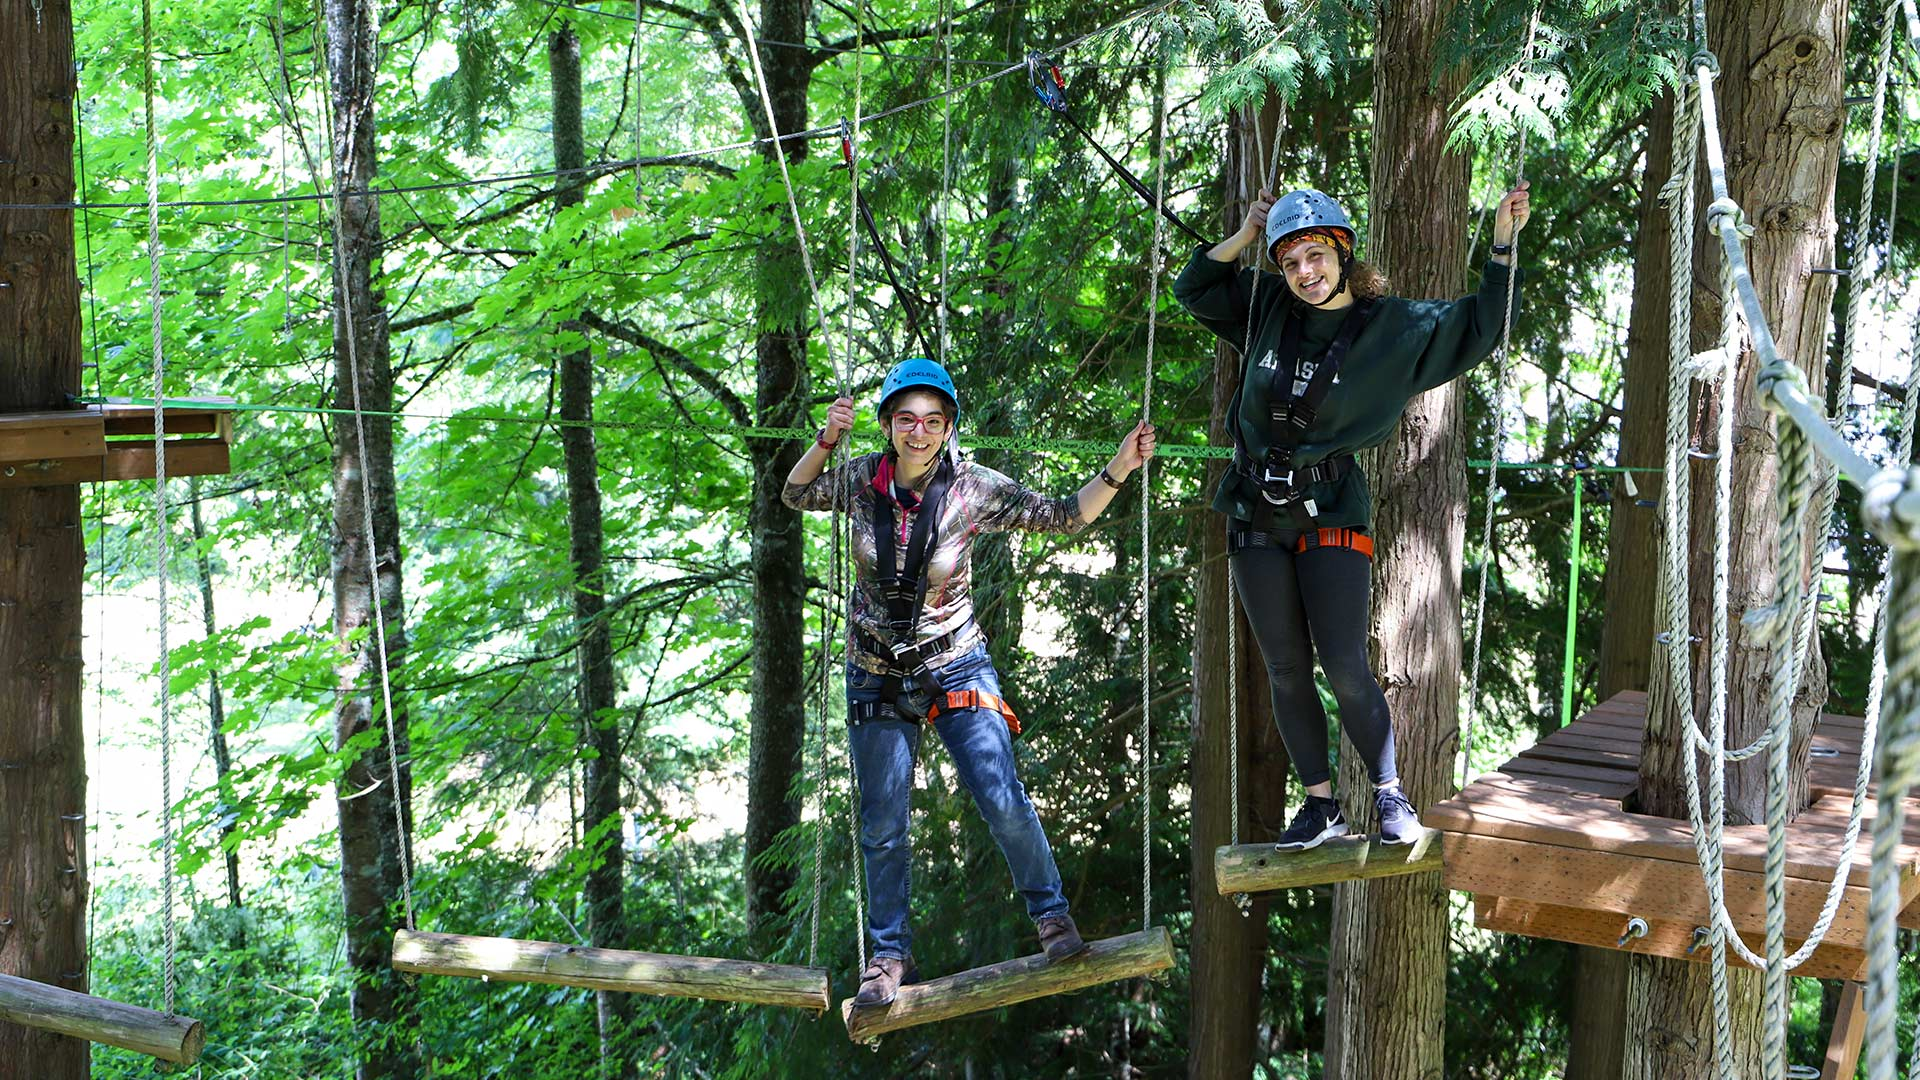 Challenge Course - Group Bonding Experience or Team Building